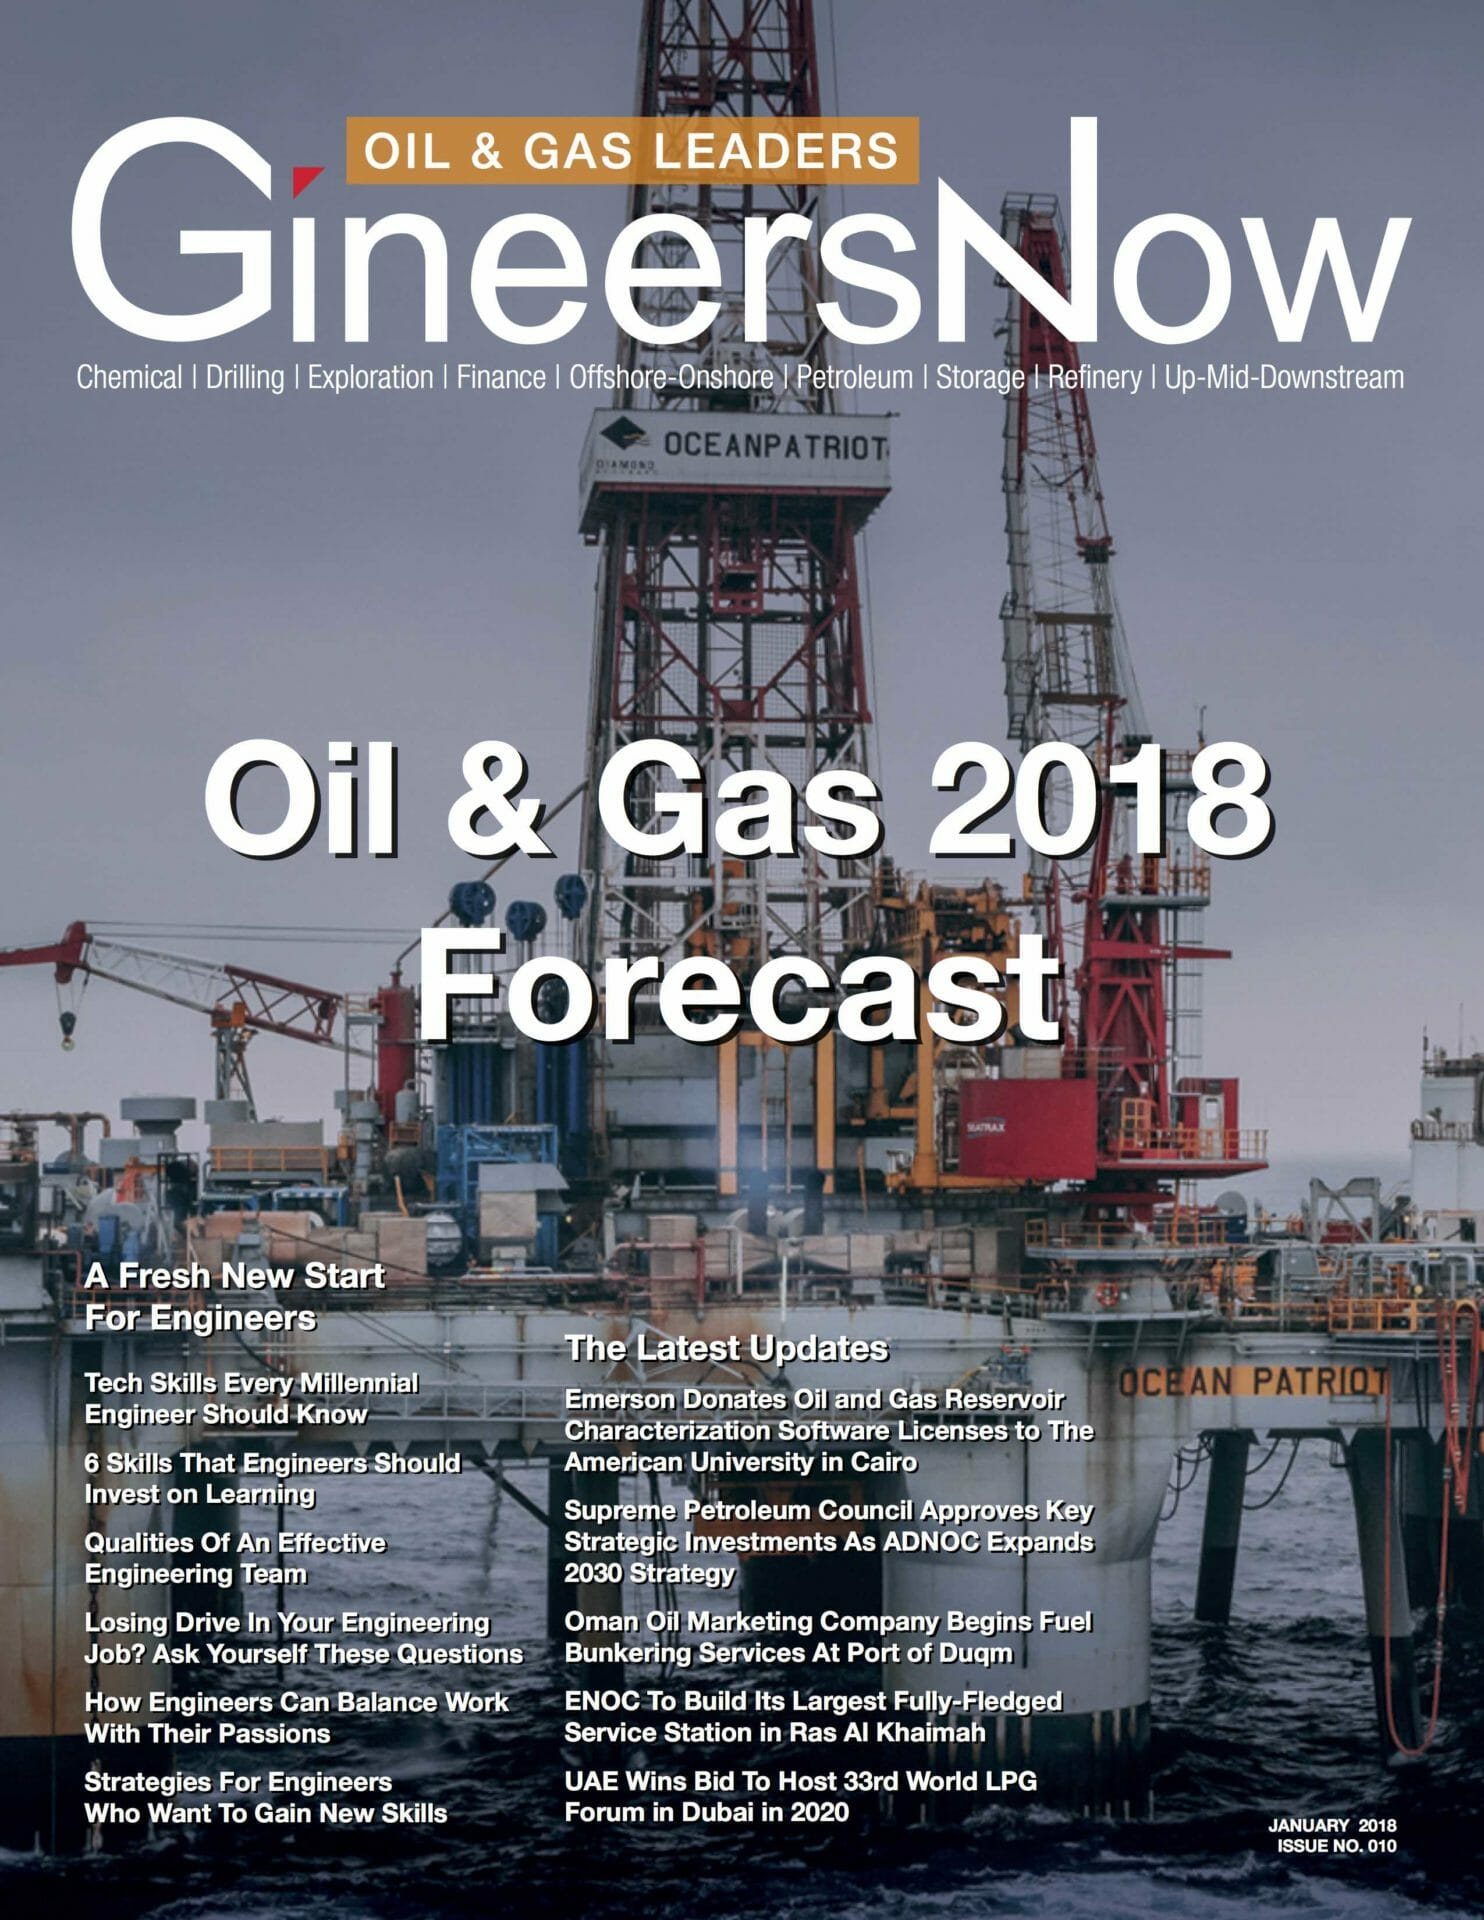 Oil and Gas Forecast 2018 - GineersNow